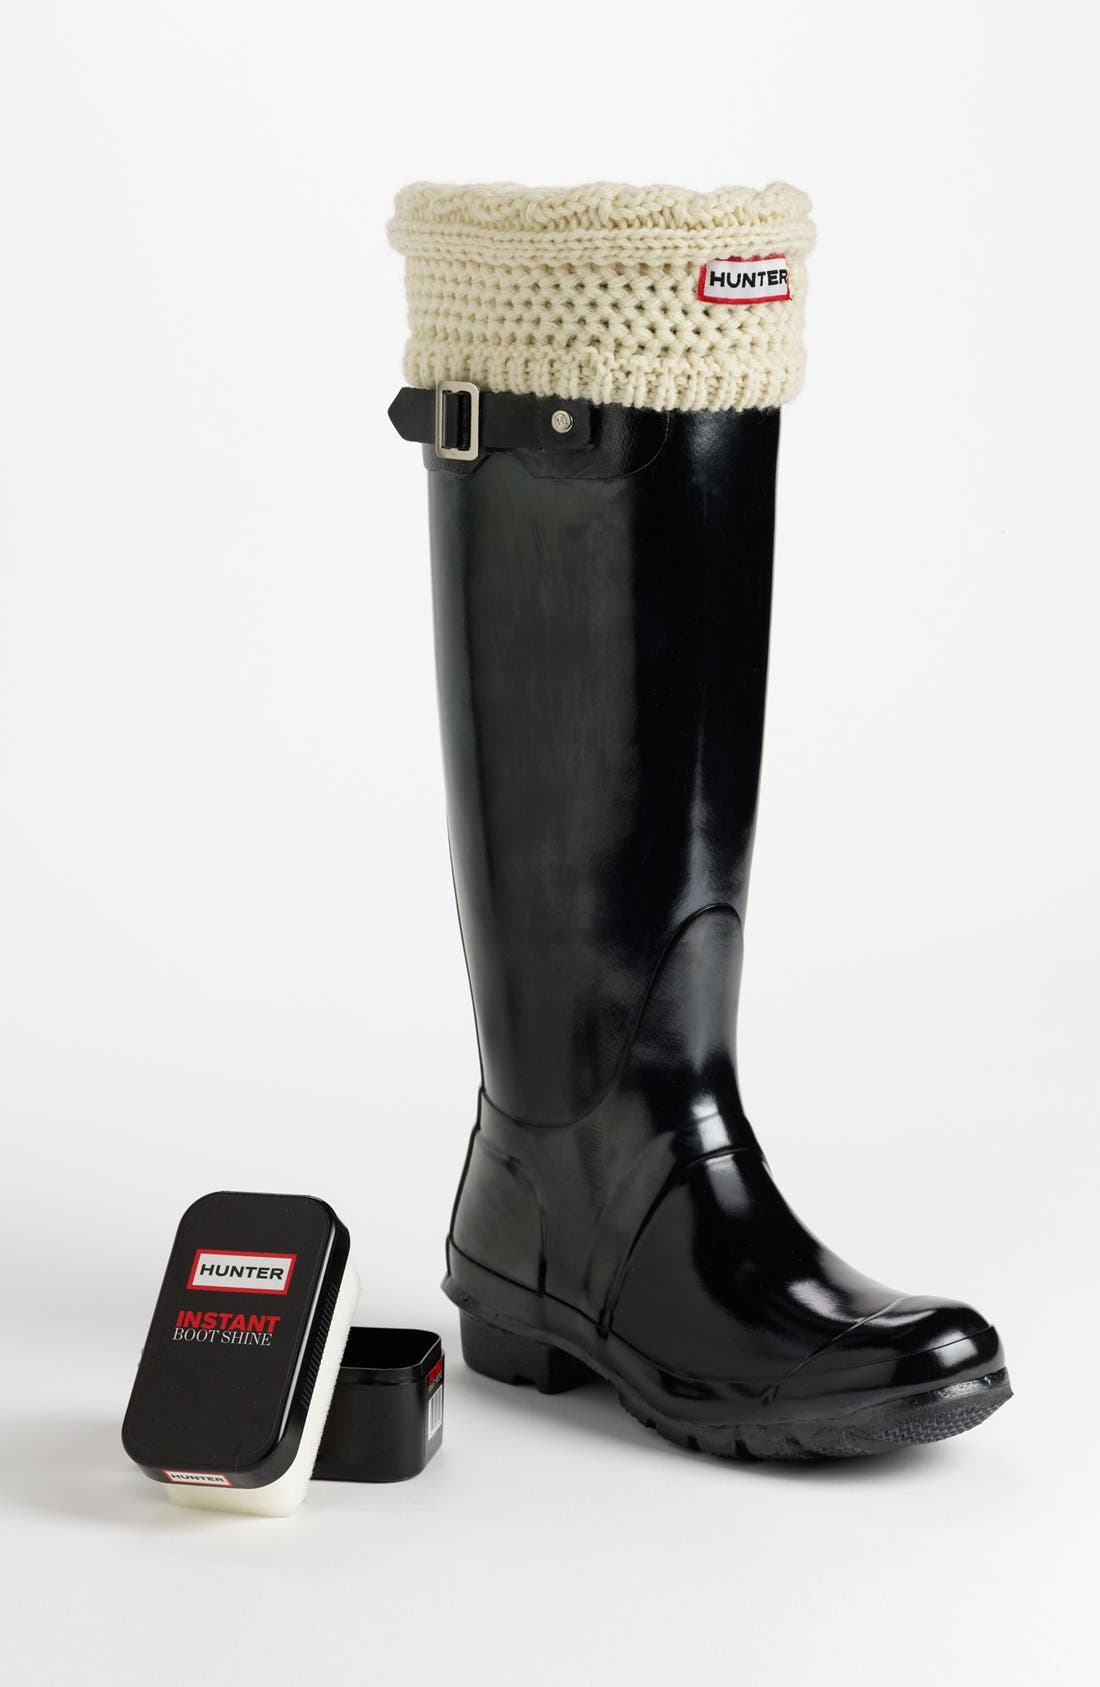 Alternate Image 2 Selected - Hunter 'Original Tall' Gloss Rain Boot, Cable Cuff Welly Socks & Instant Boot Shine Sponge